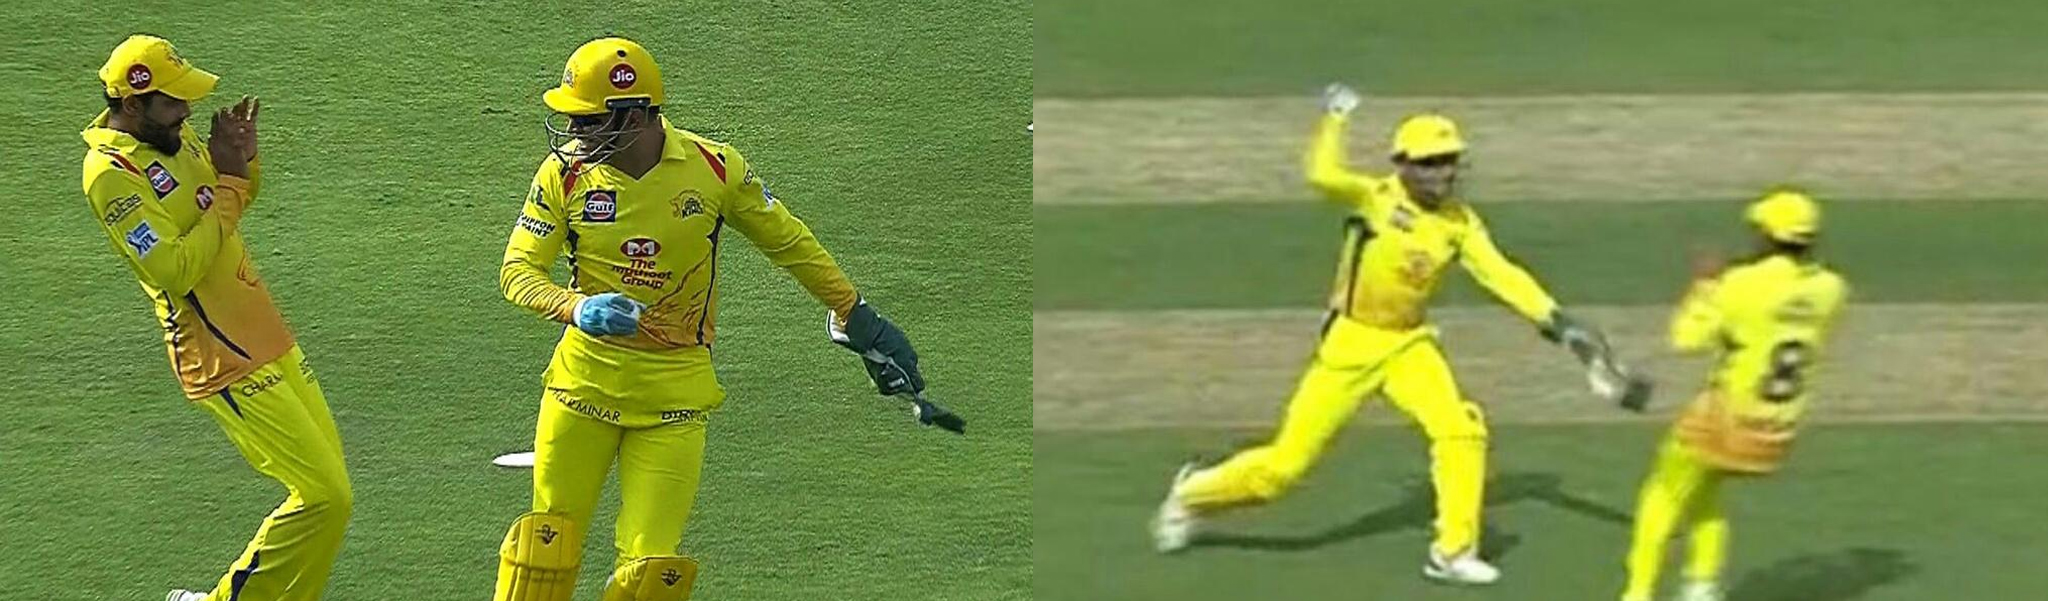 Dhoni Trolled Jadeja and Smiled After that, That Too on Field. Video Shows Funny Side of Dhoni.